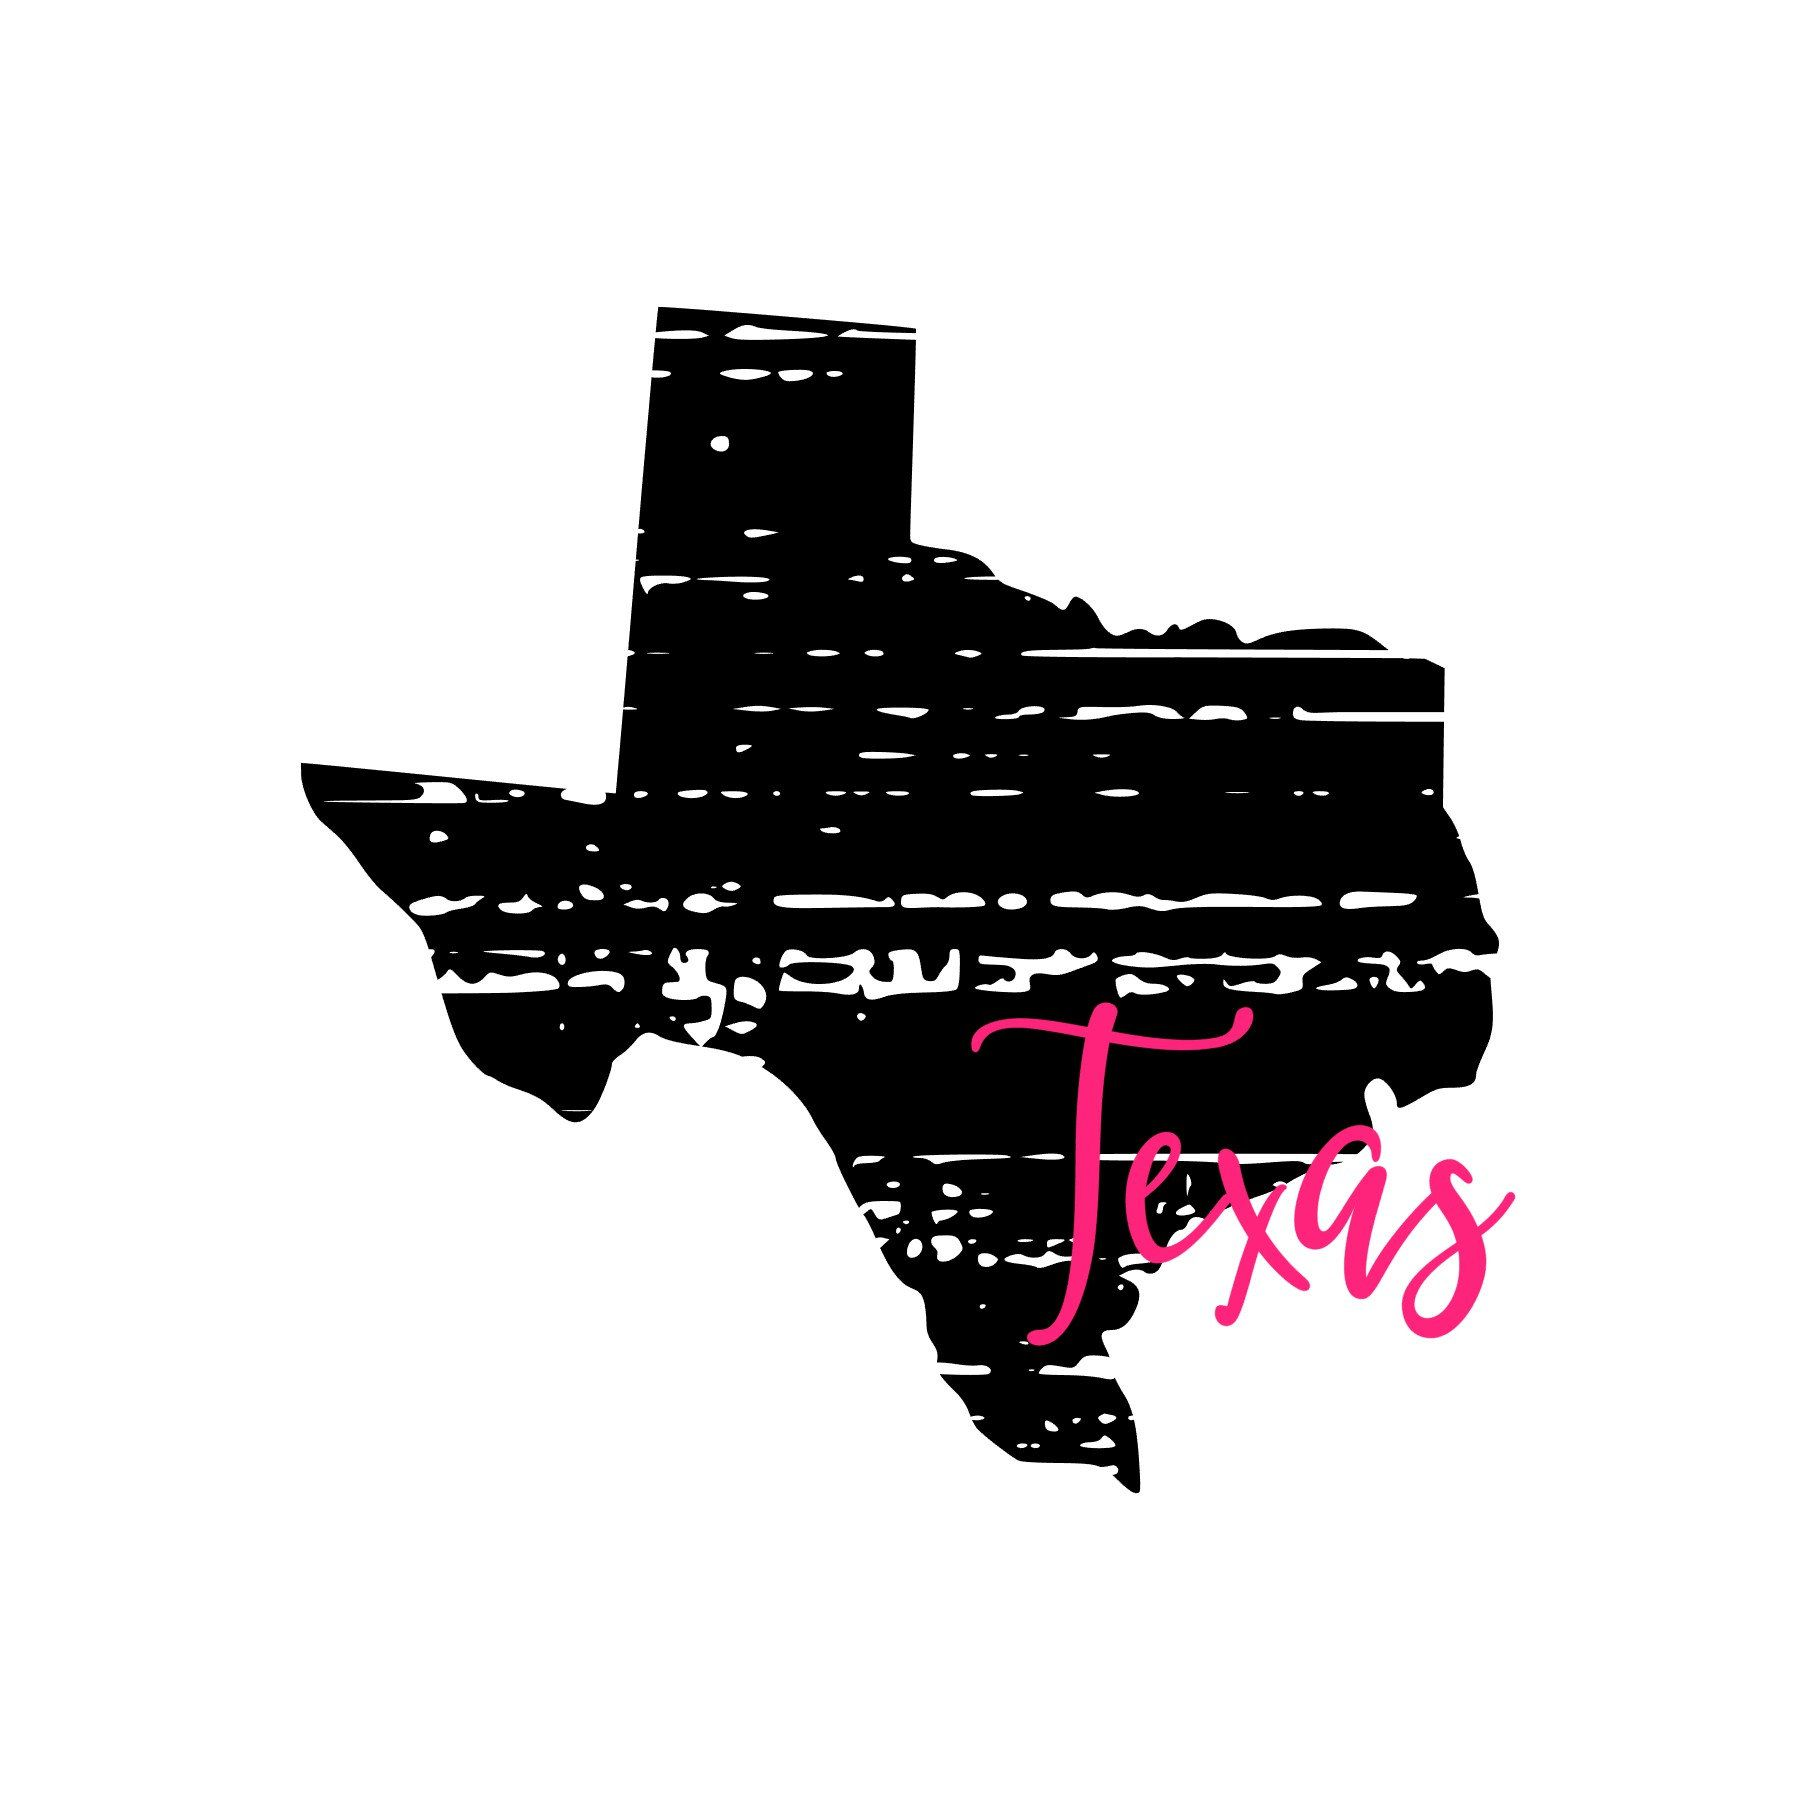 Distressed Texas State Svg Png Etsy Svg Texas Texas Shirts